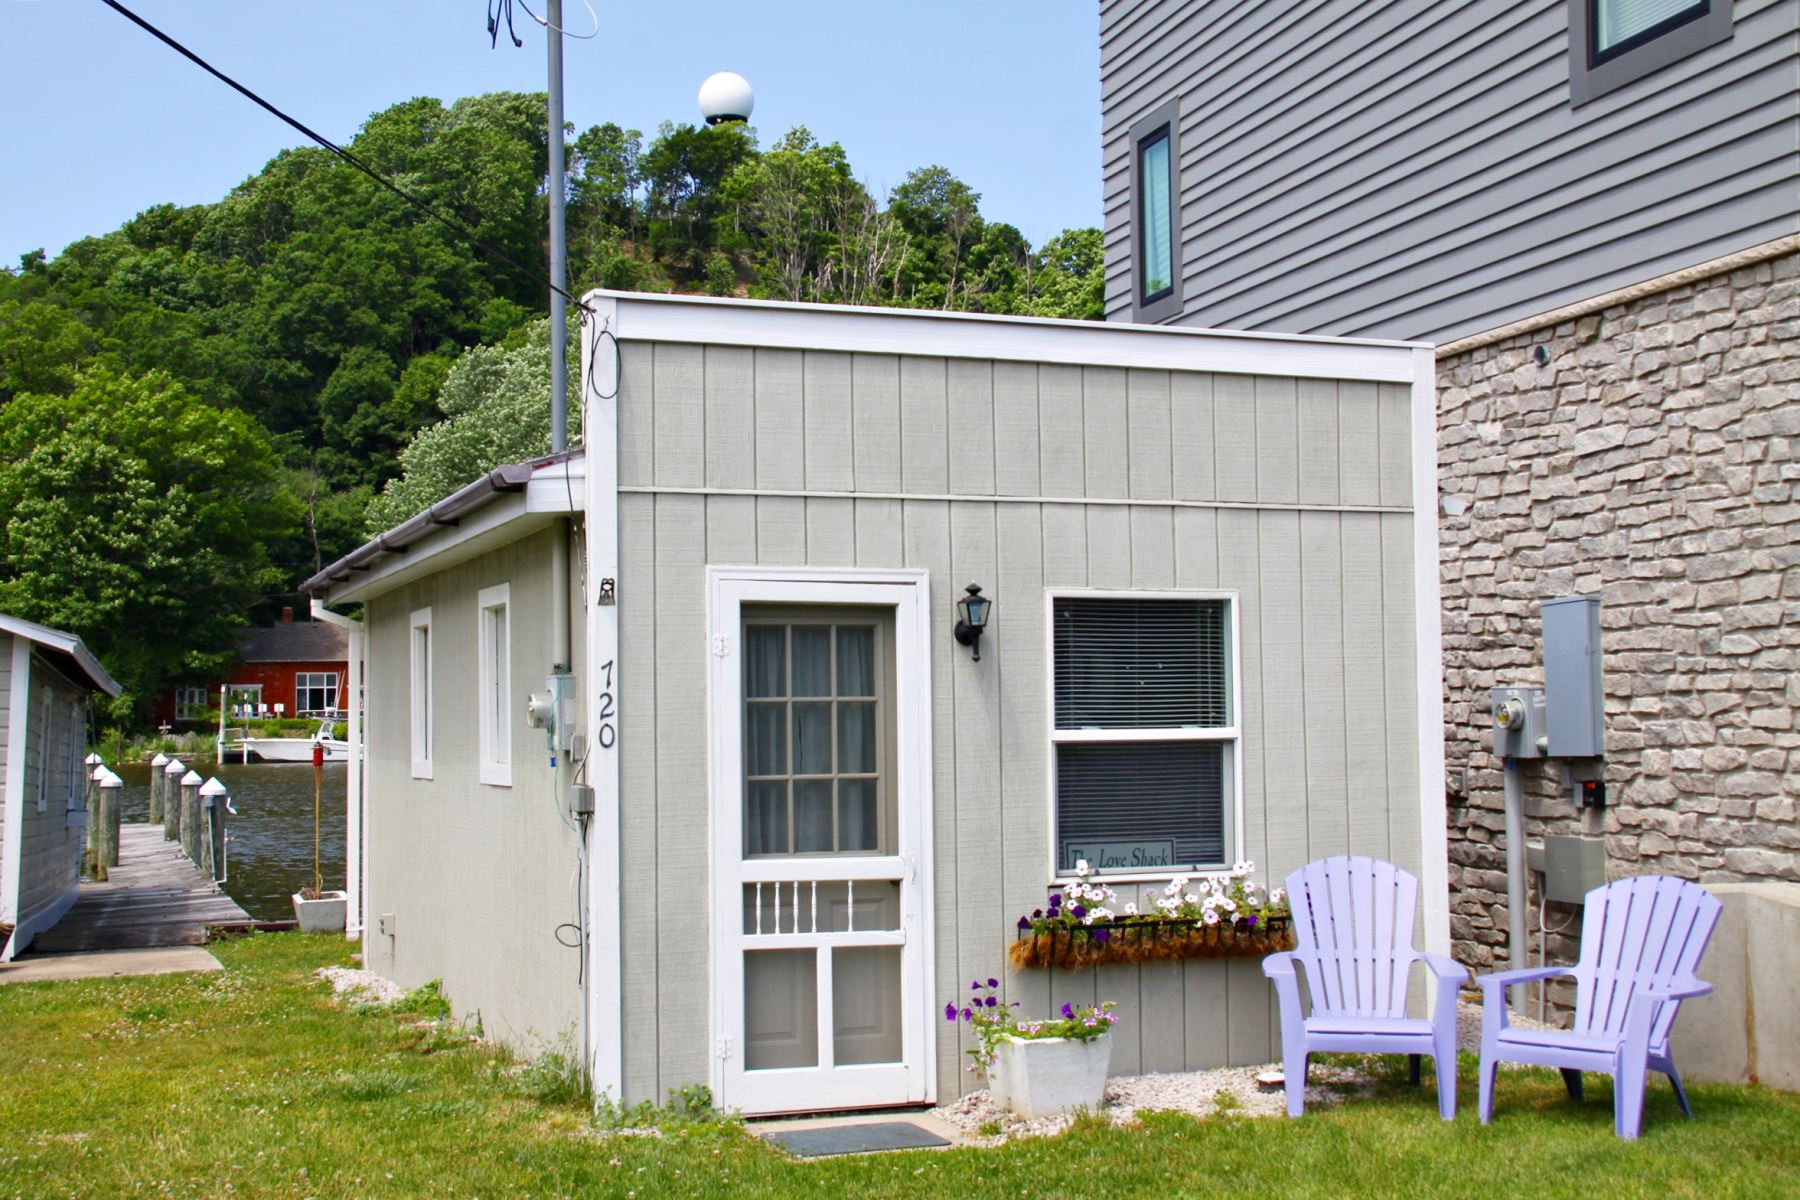 Mill pond realty vacation rentals the love shack for The love shack cabin